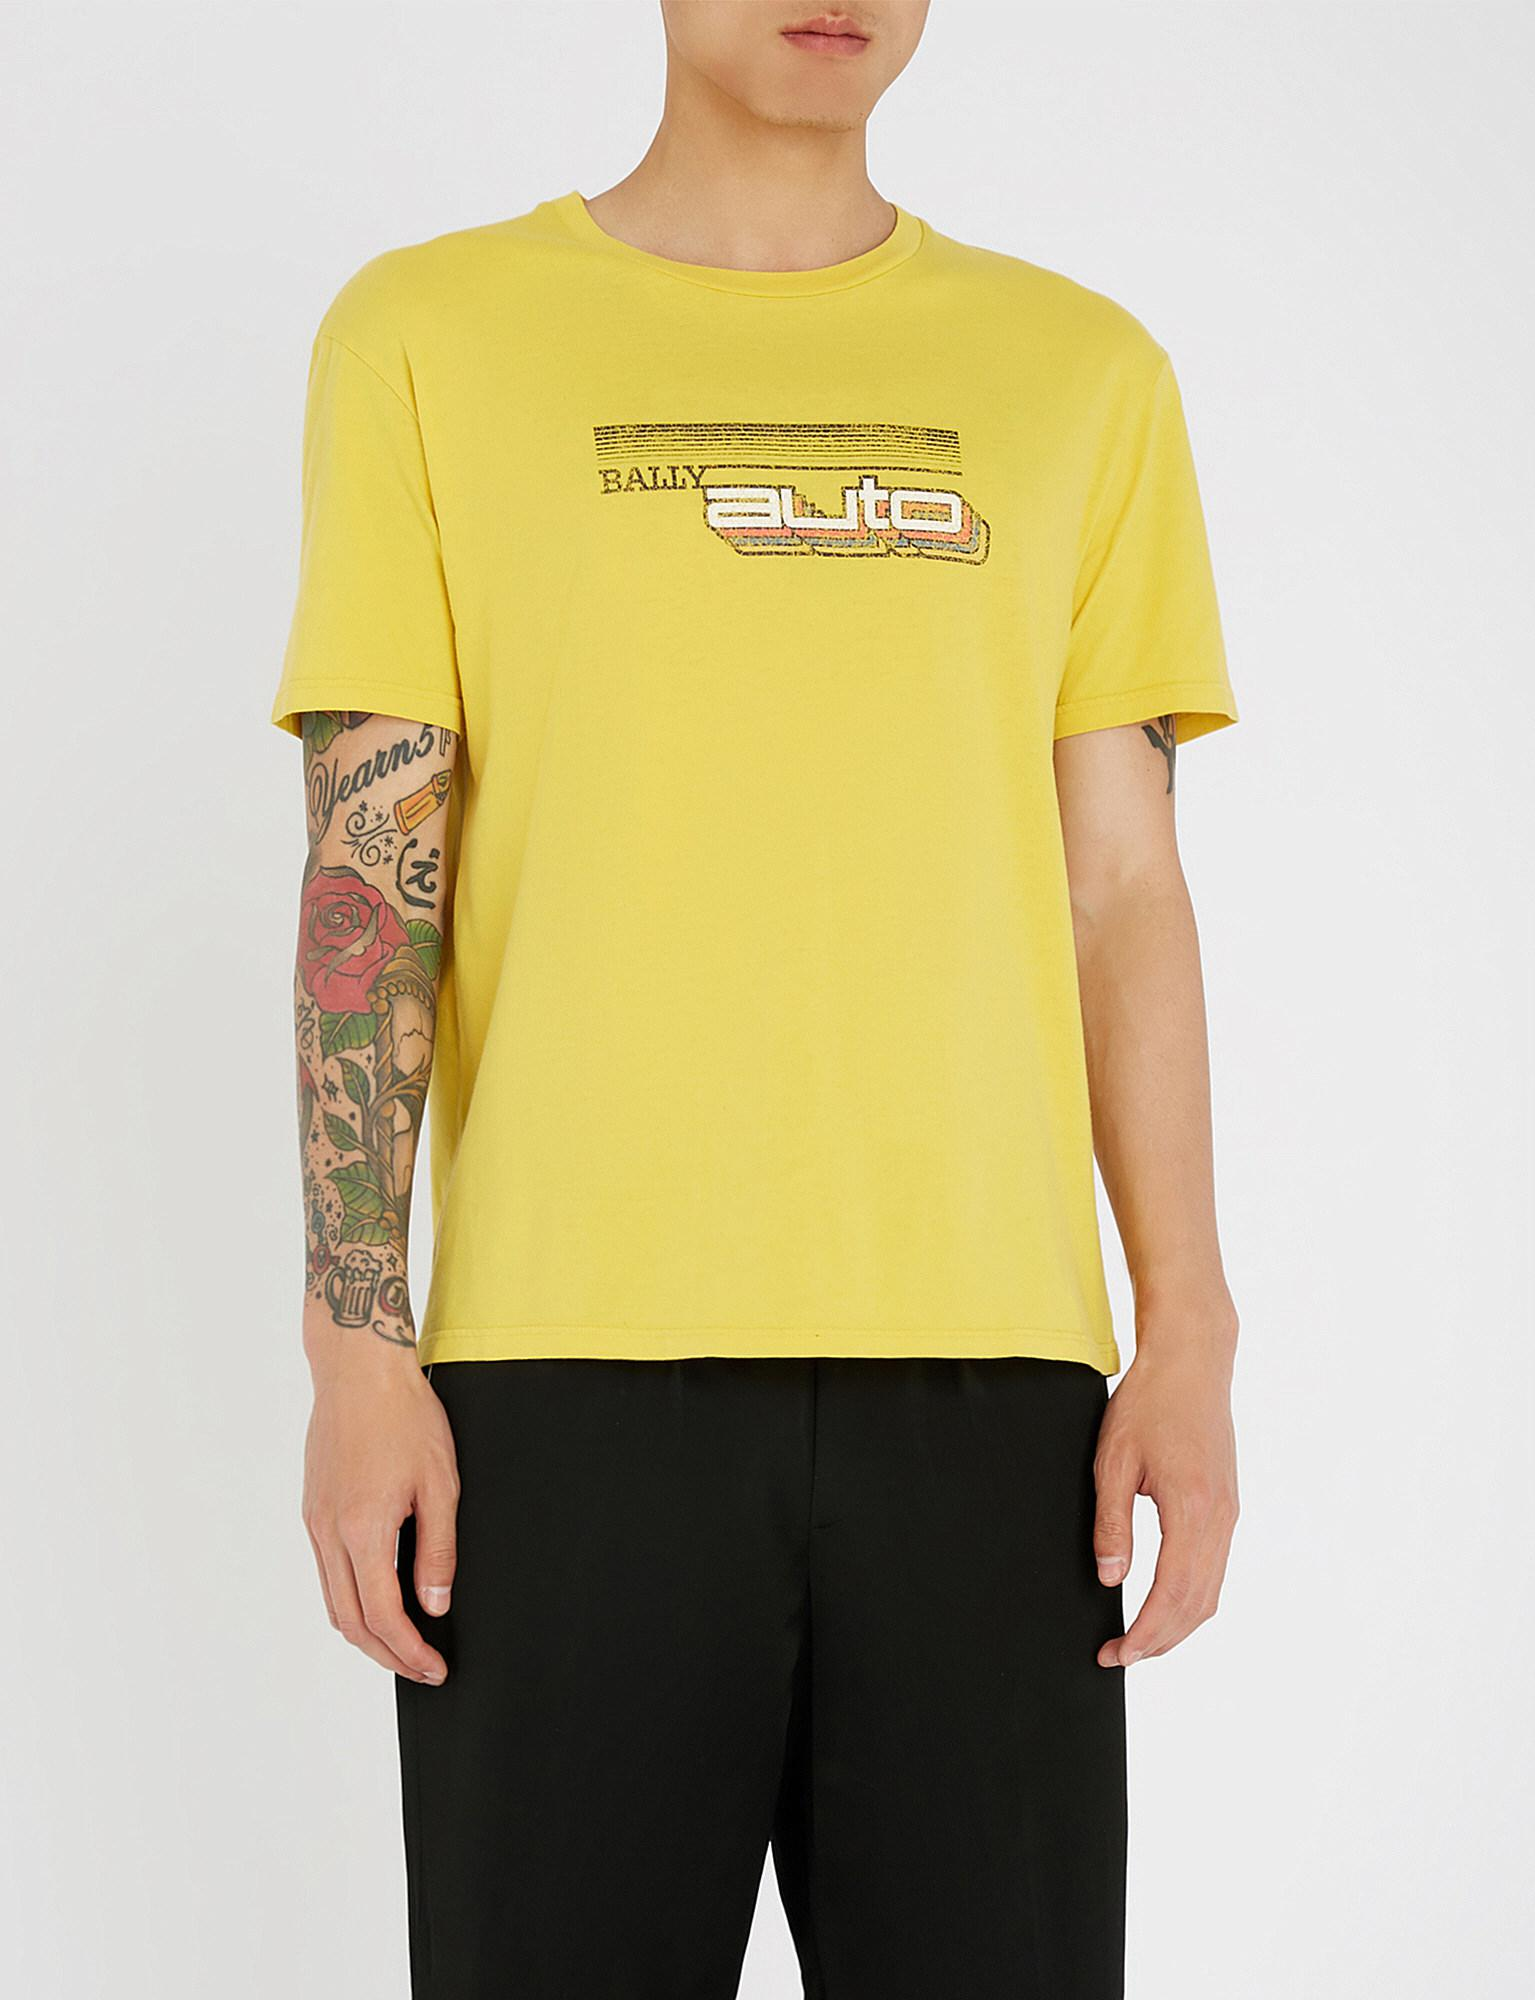 8663ab2da Bally Distressed Cotton-jersey T-shirt in Yellow for Men - Lyst